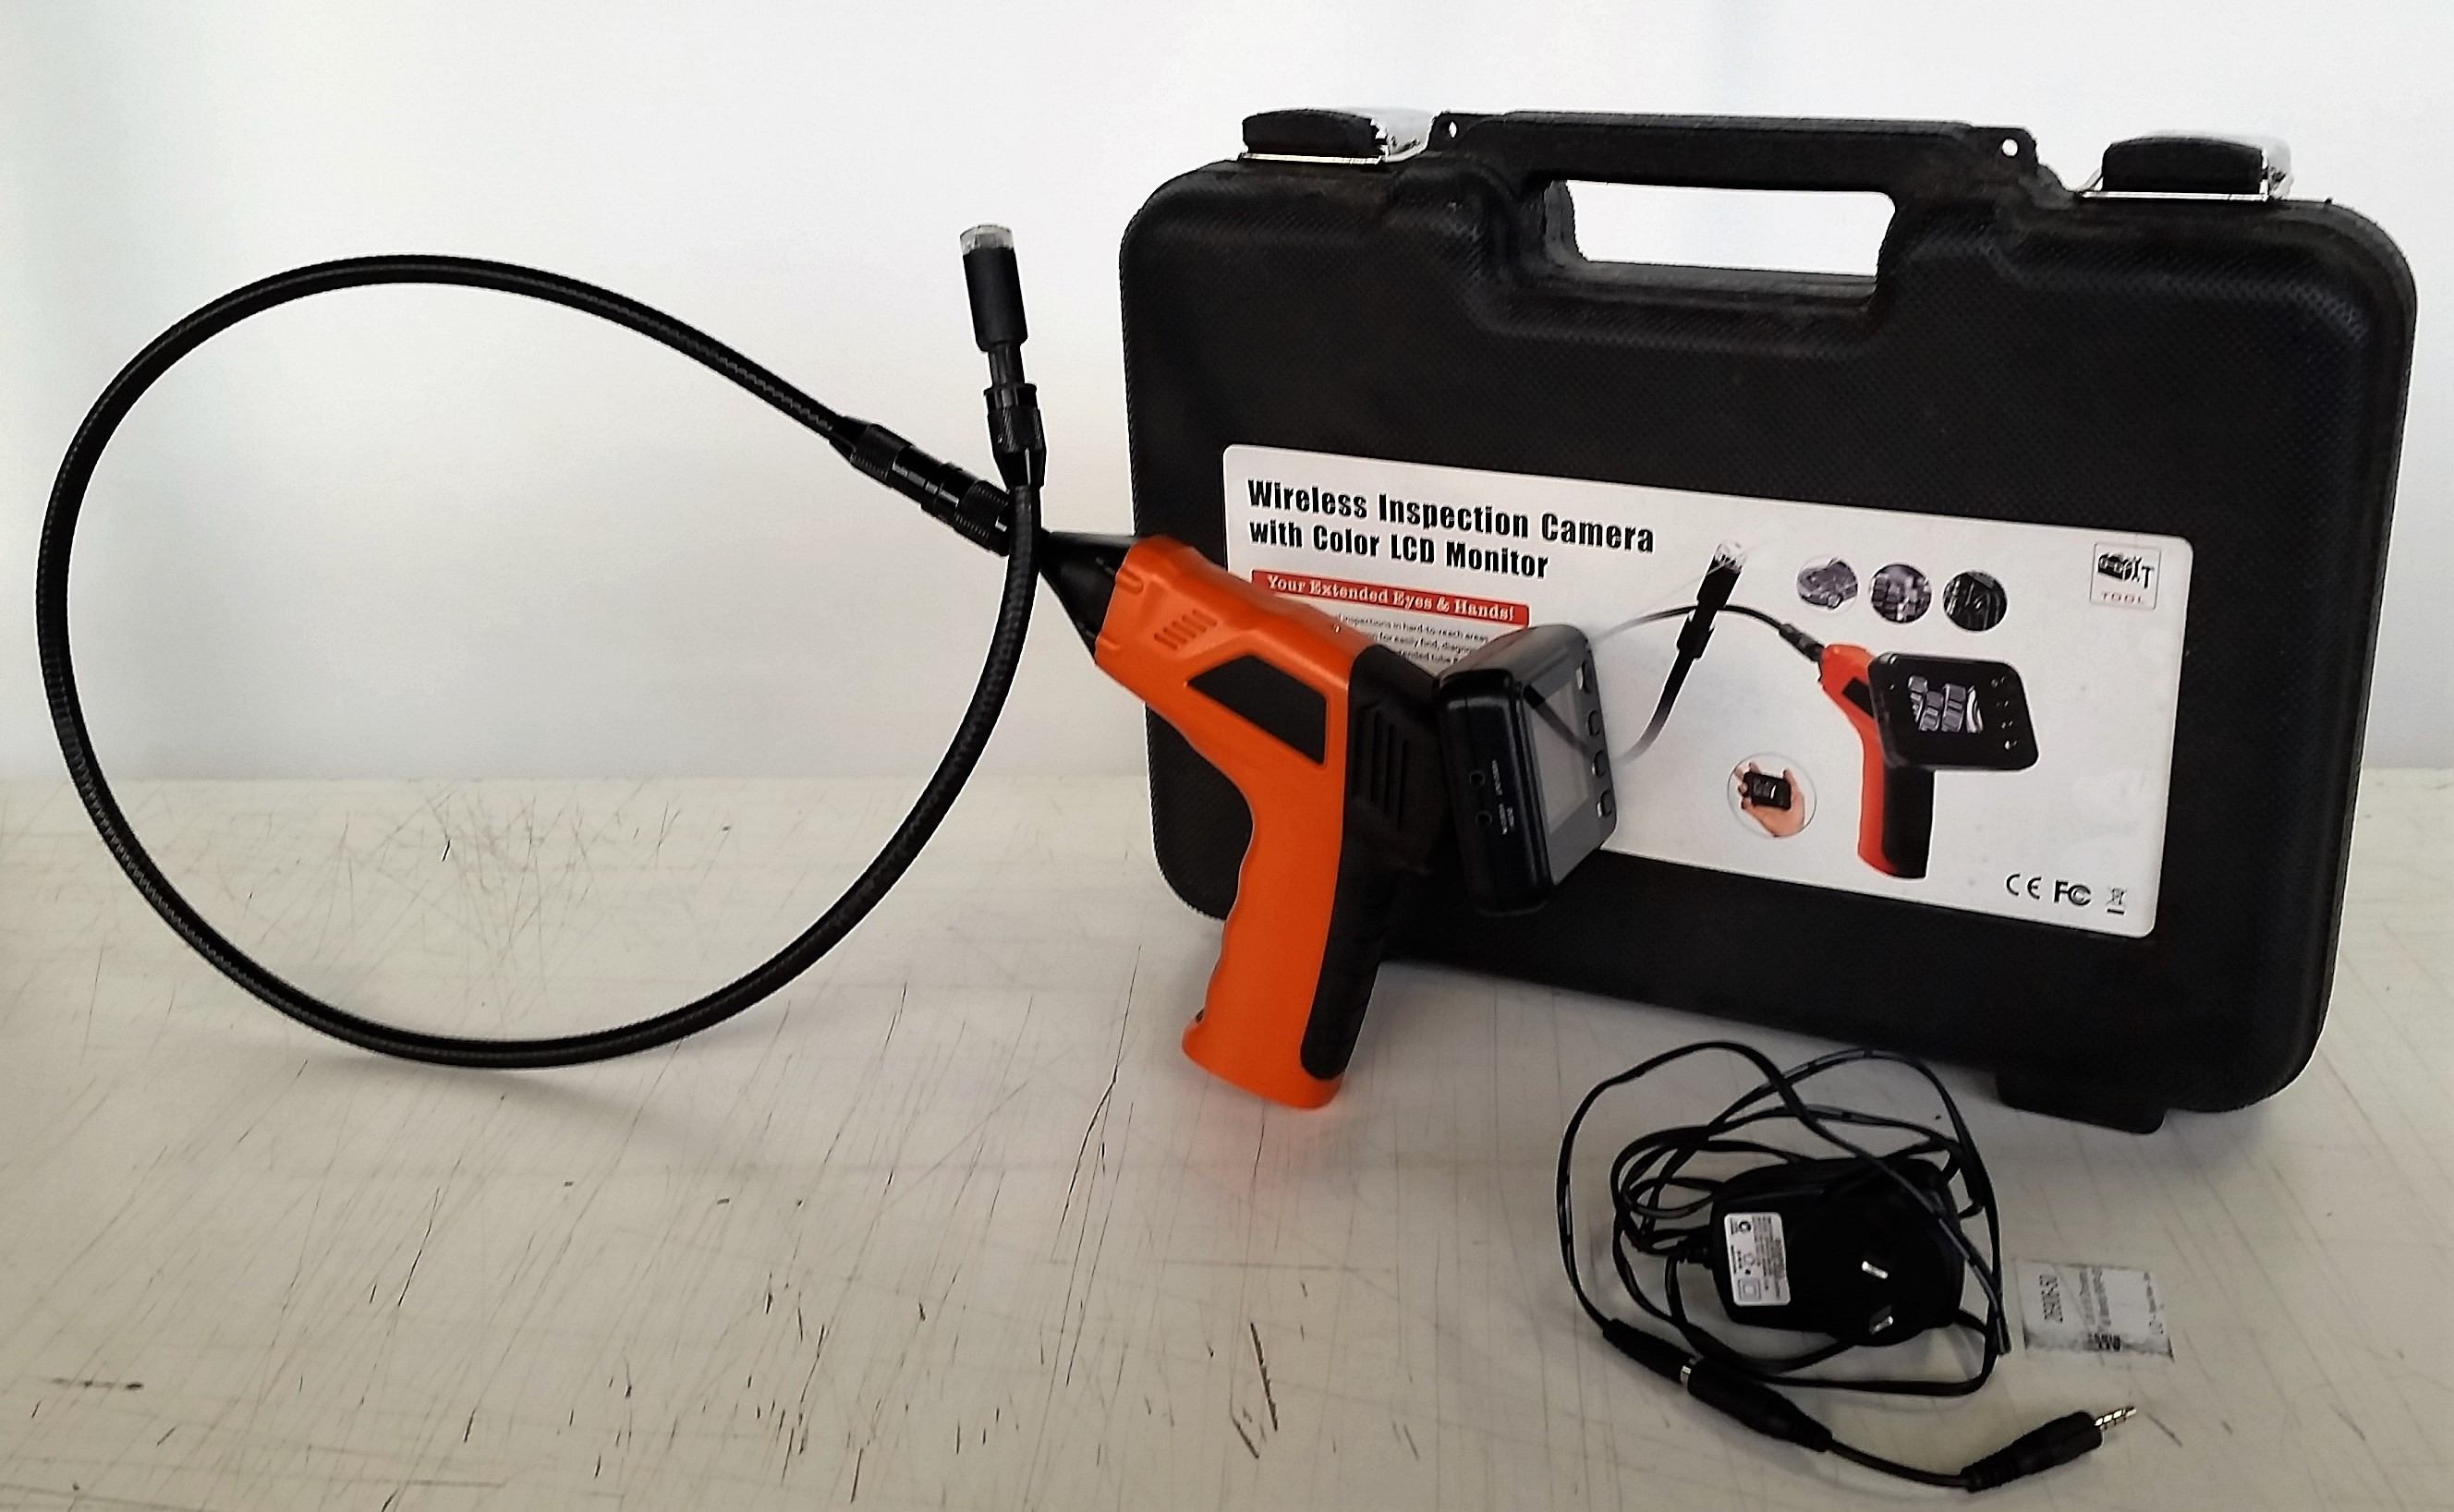 Wireless Inspection Camera Brand New Wireless Inspection Camera With Color Lcd Monitor Rrp 300 00